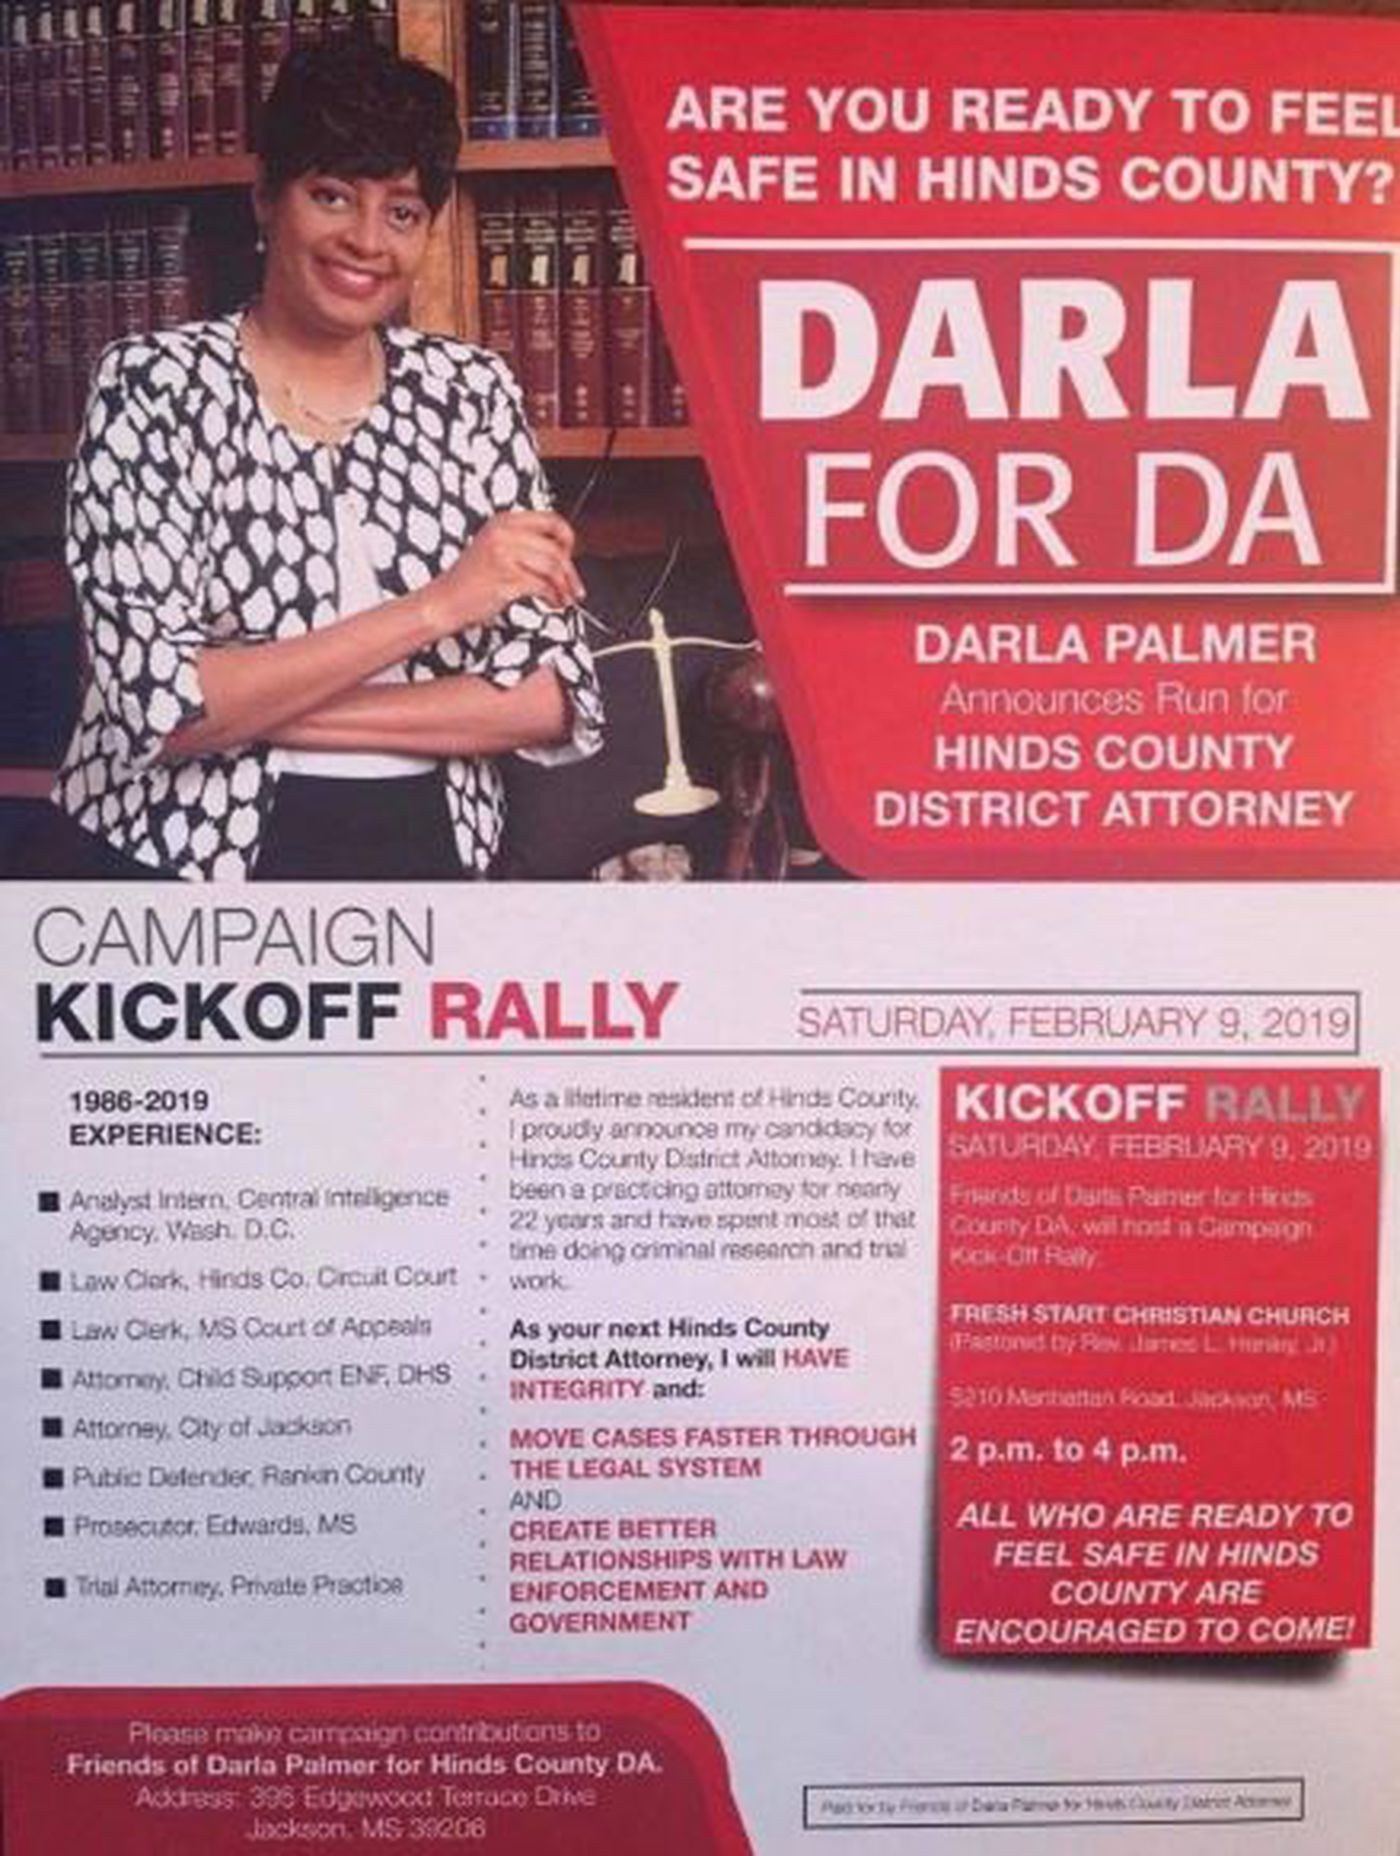 Darla Palmer announces candidacy for Hinds County D.A.